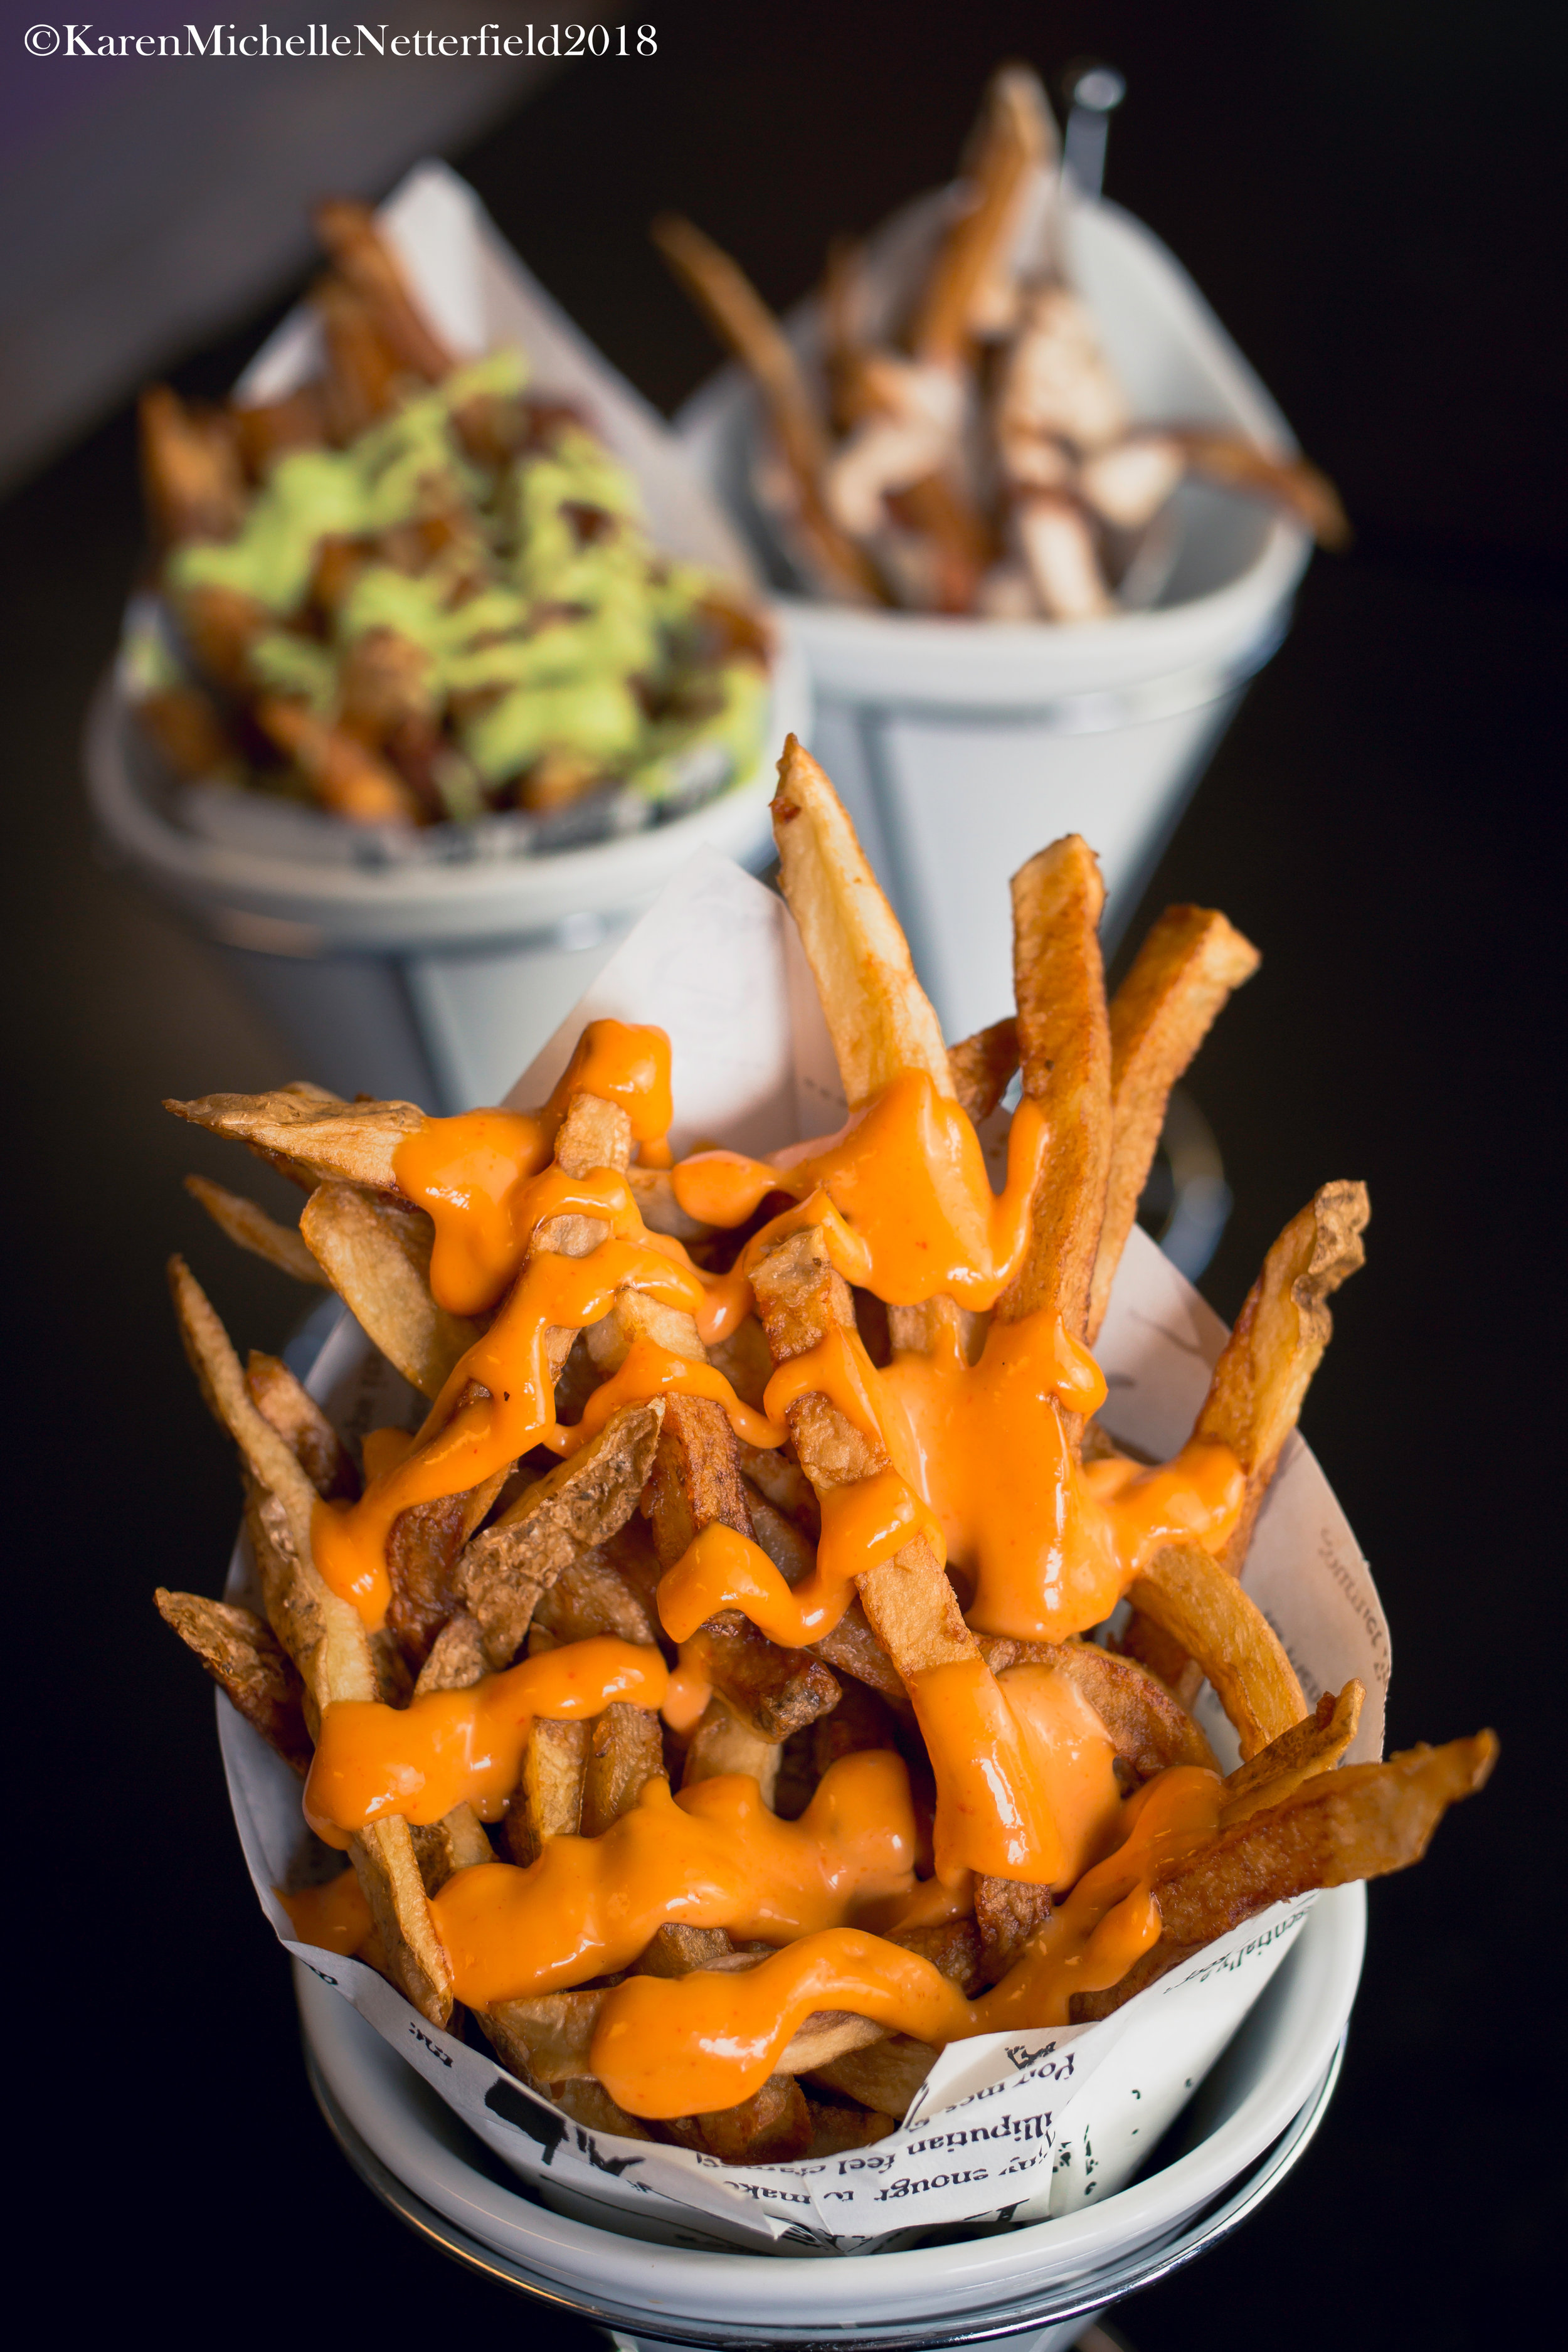 Frites_The_House_of_Frites_Lunch Special_1©KarenMichelleNetterfield2018.jpg